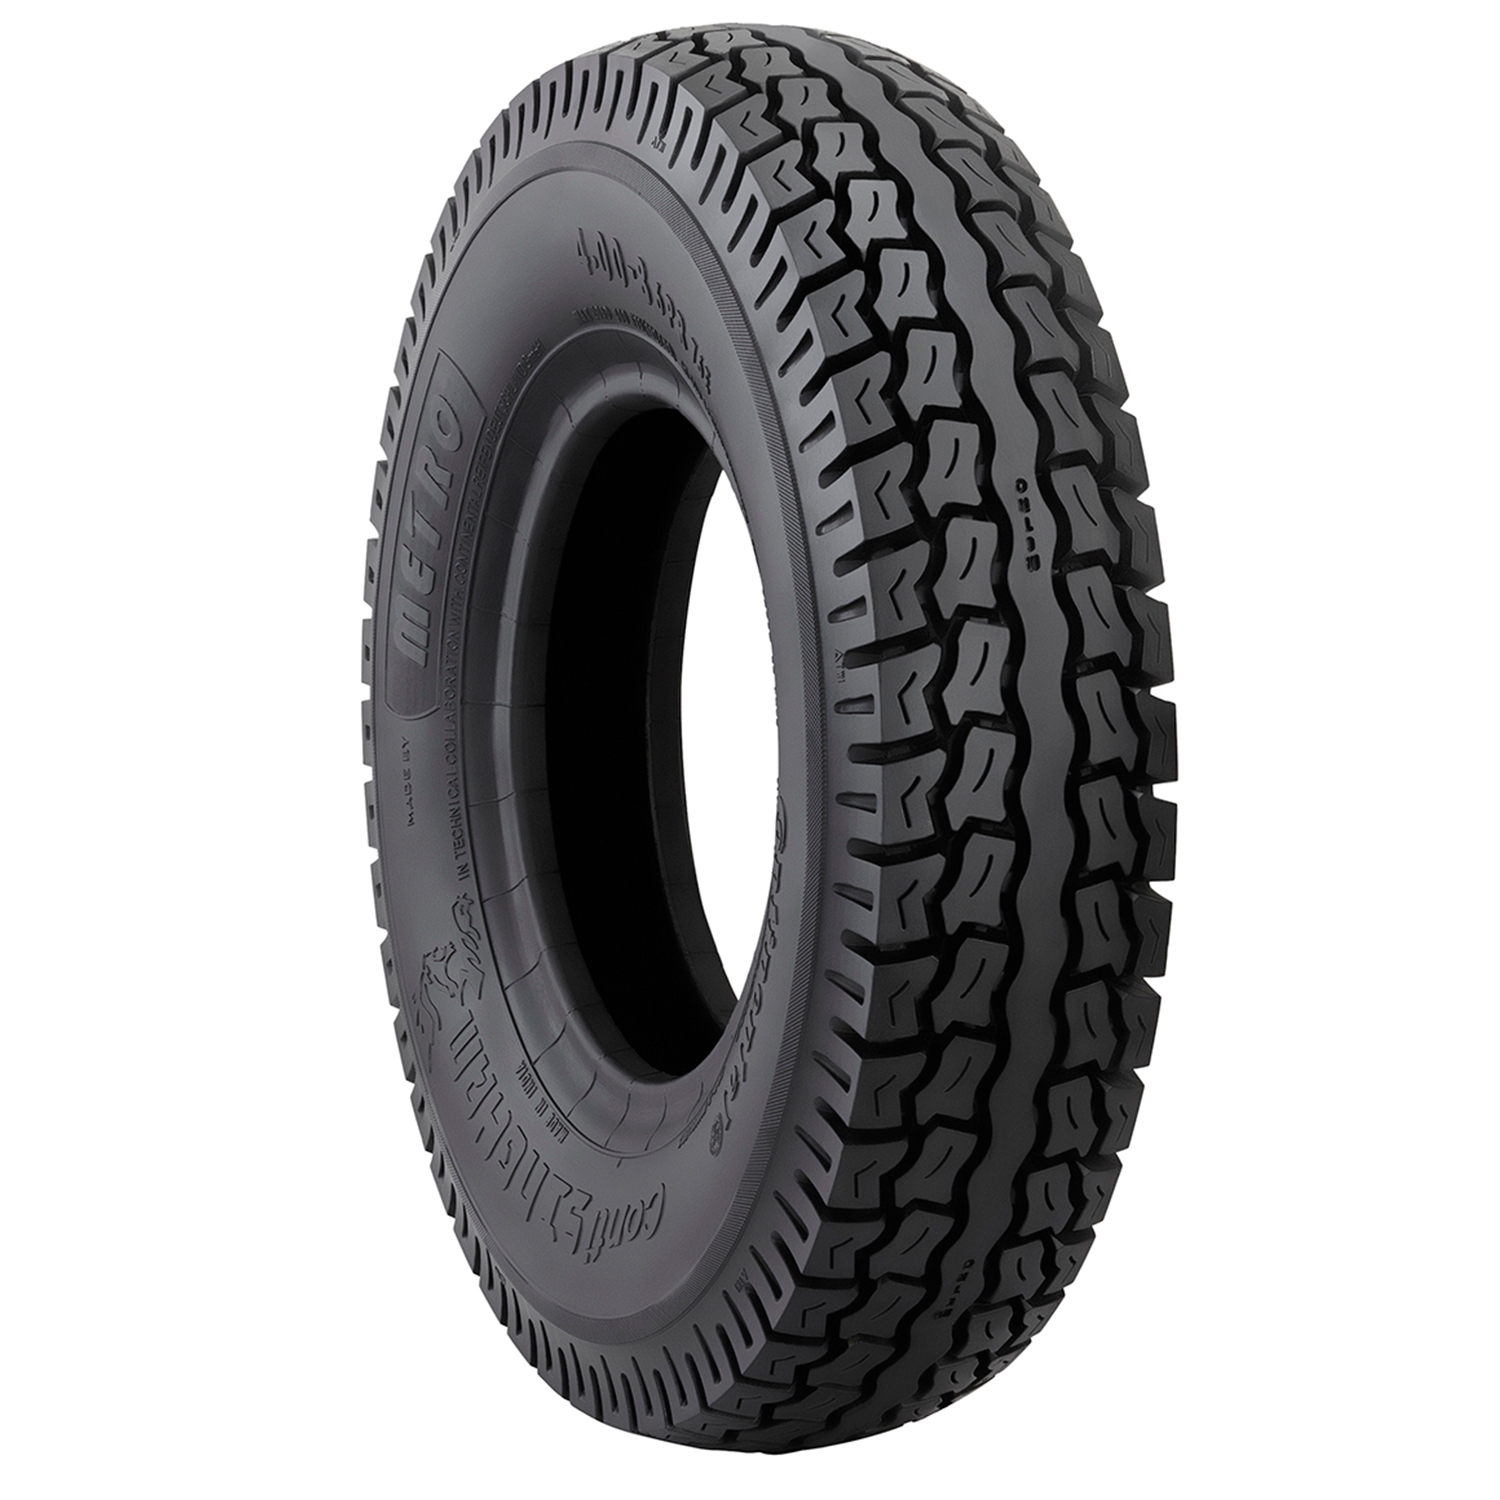 Metro CONTI SINGHAM 400 8 Requires Tube Front/Rear Two-Wheeler Tyre